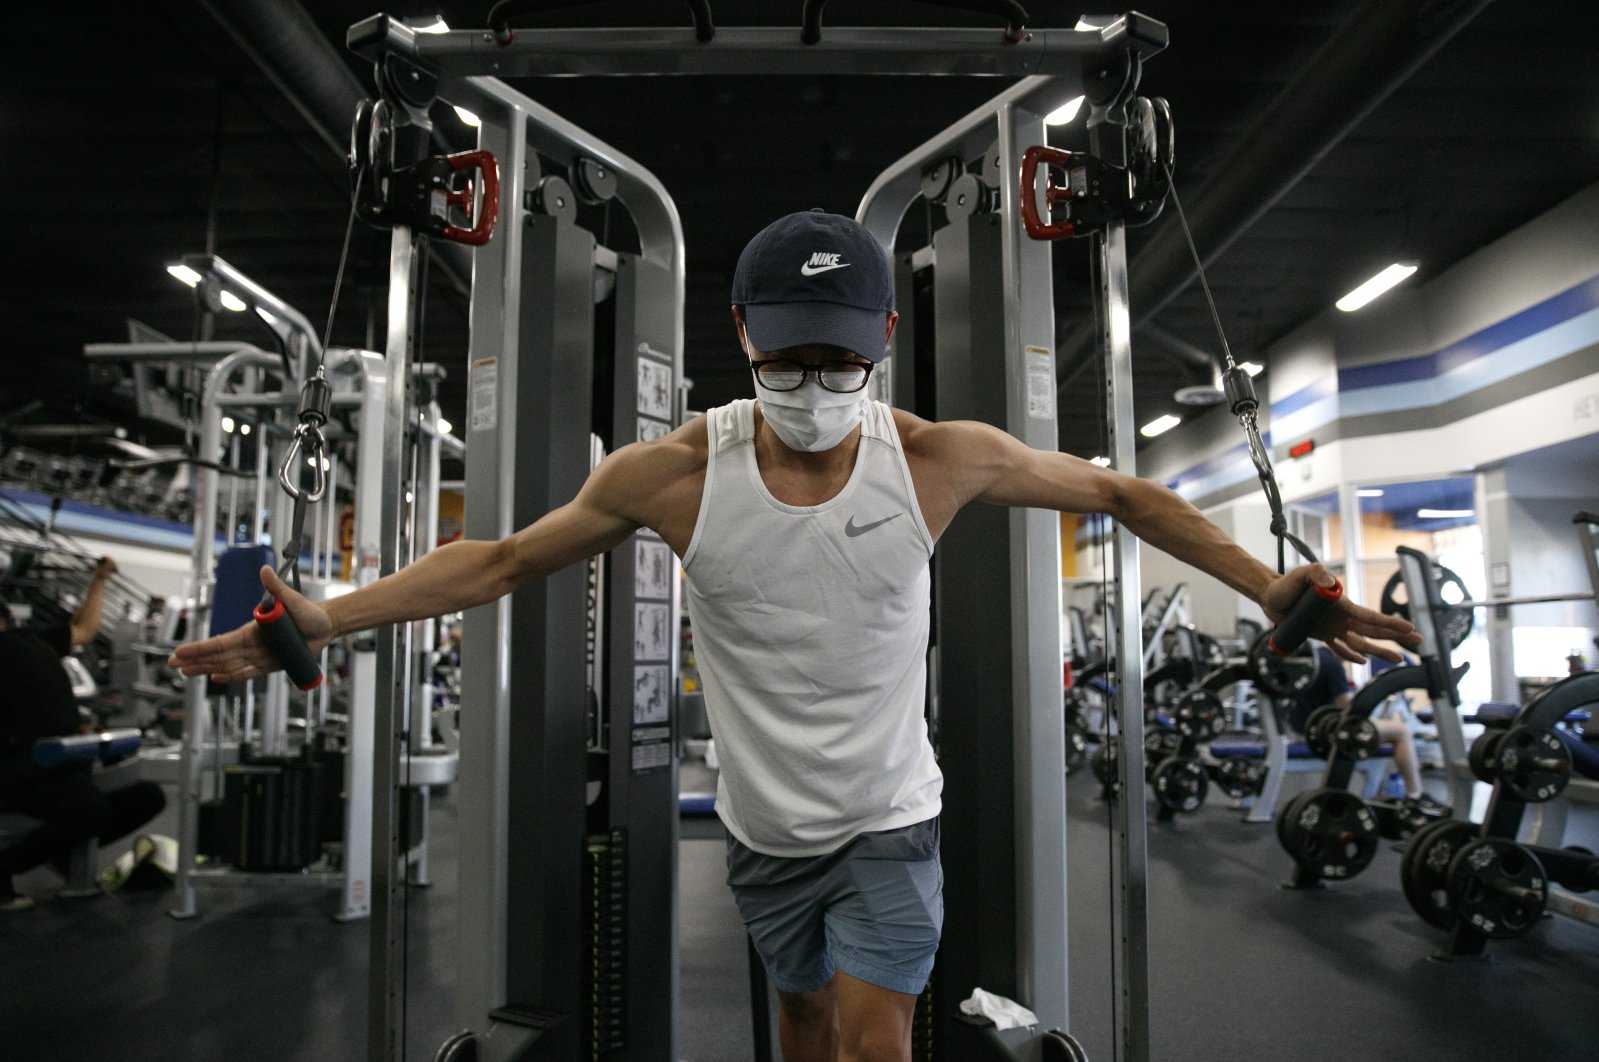 Benji Xiang, 32, wears a mask while working out at a gym in Los Angeles, California, U.S., June 26, 2020. (AP Photo)